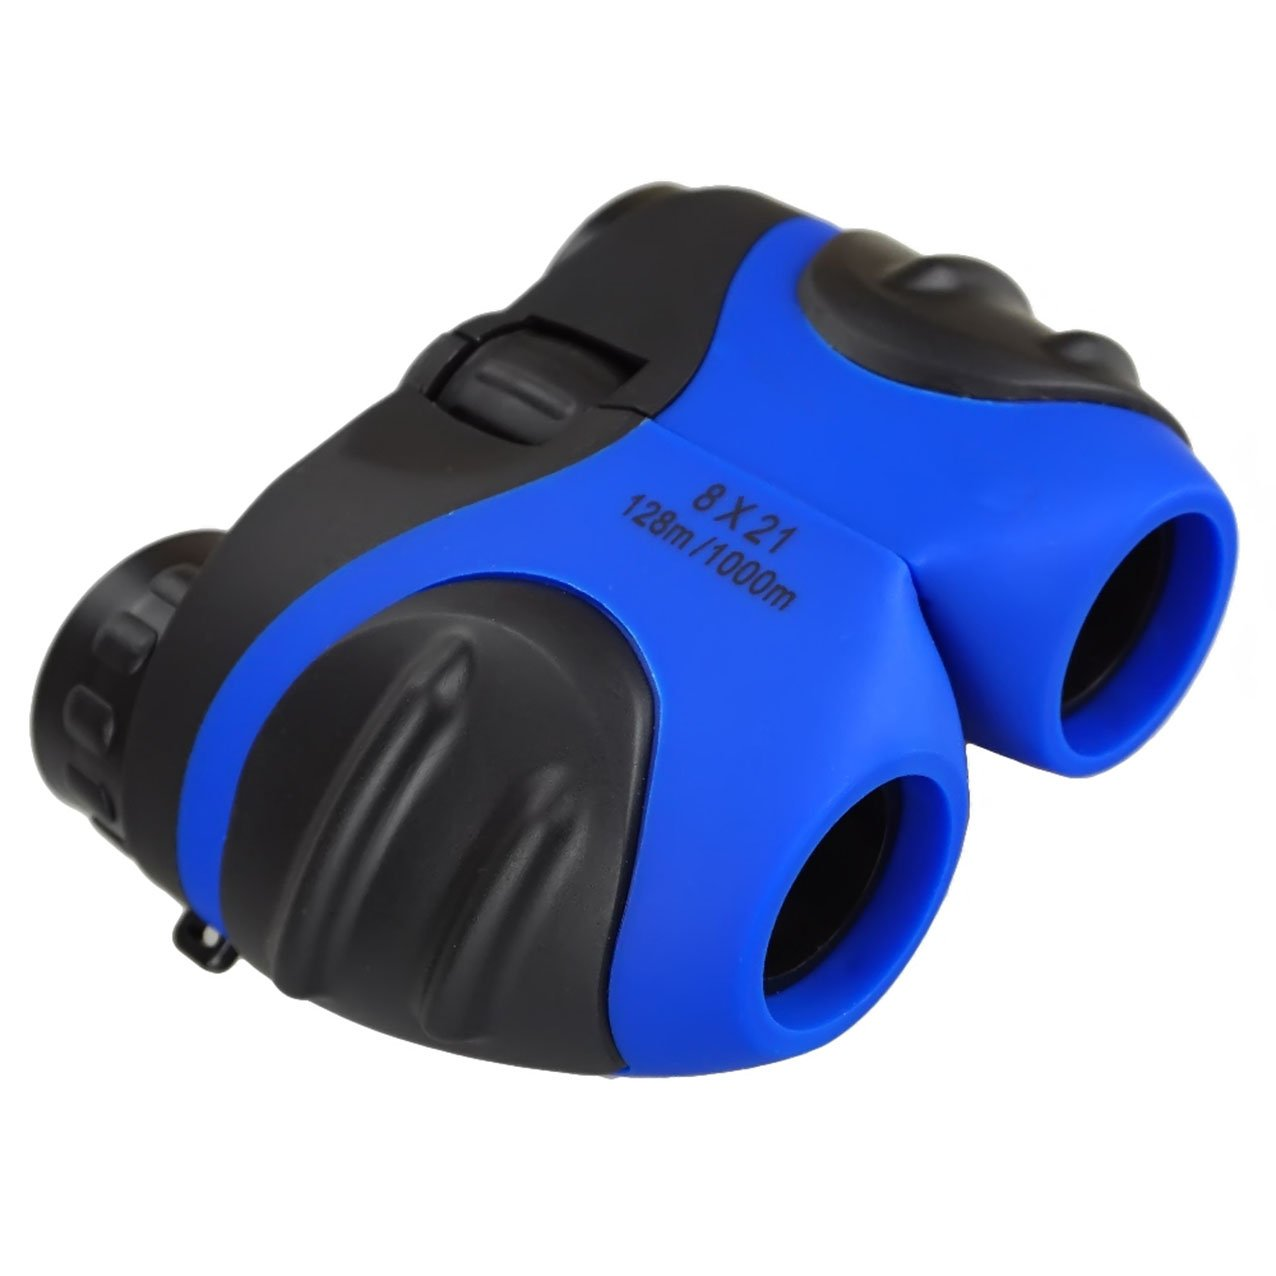 Easony Toys for 4-5 Year Old Boys, Compact Binoculars for Kids Toys for 3-12 Year Old Boys 3-12 Year Old Girls Gifts Blue ESUSEB02